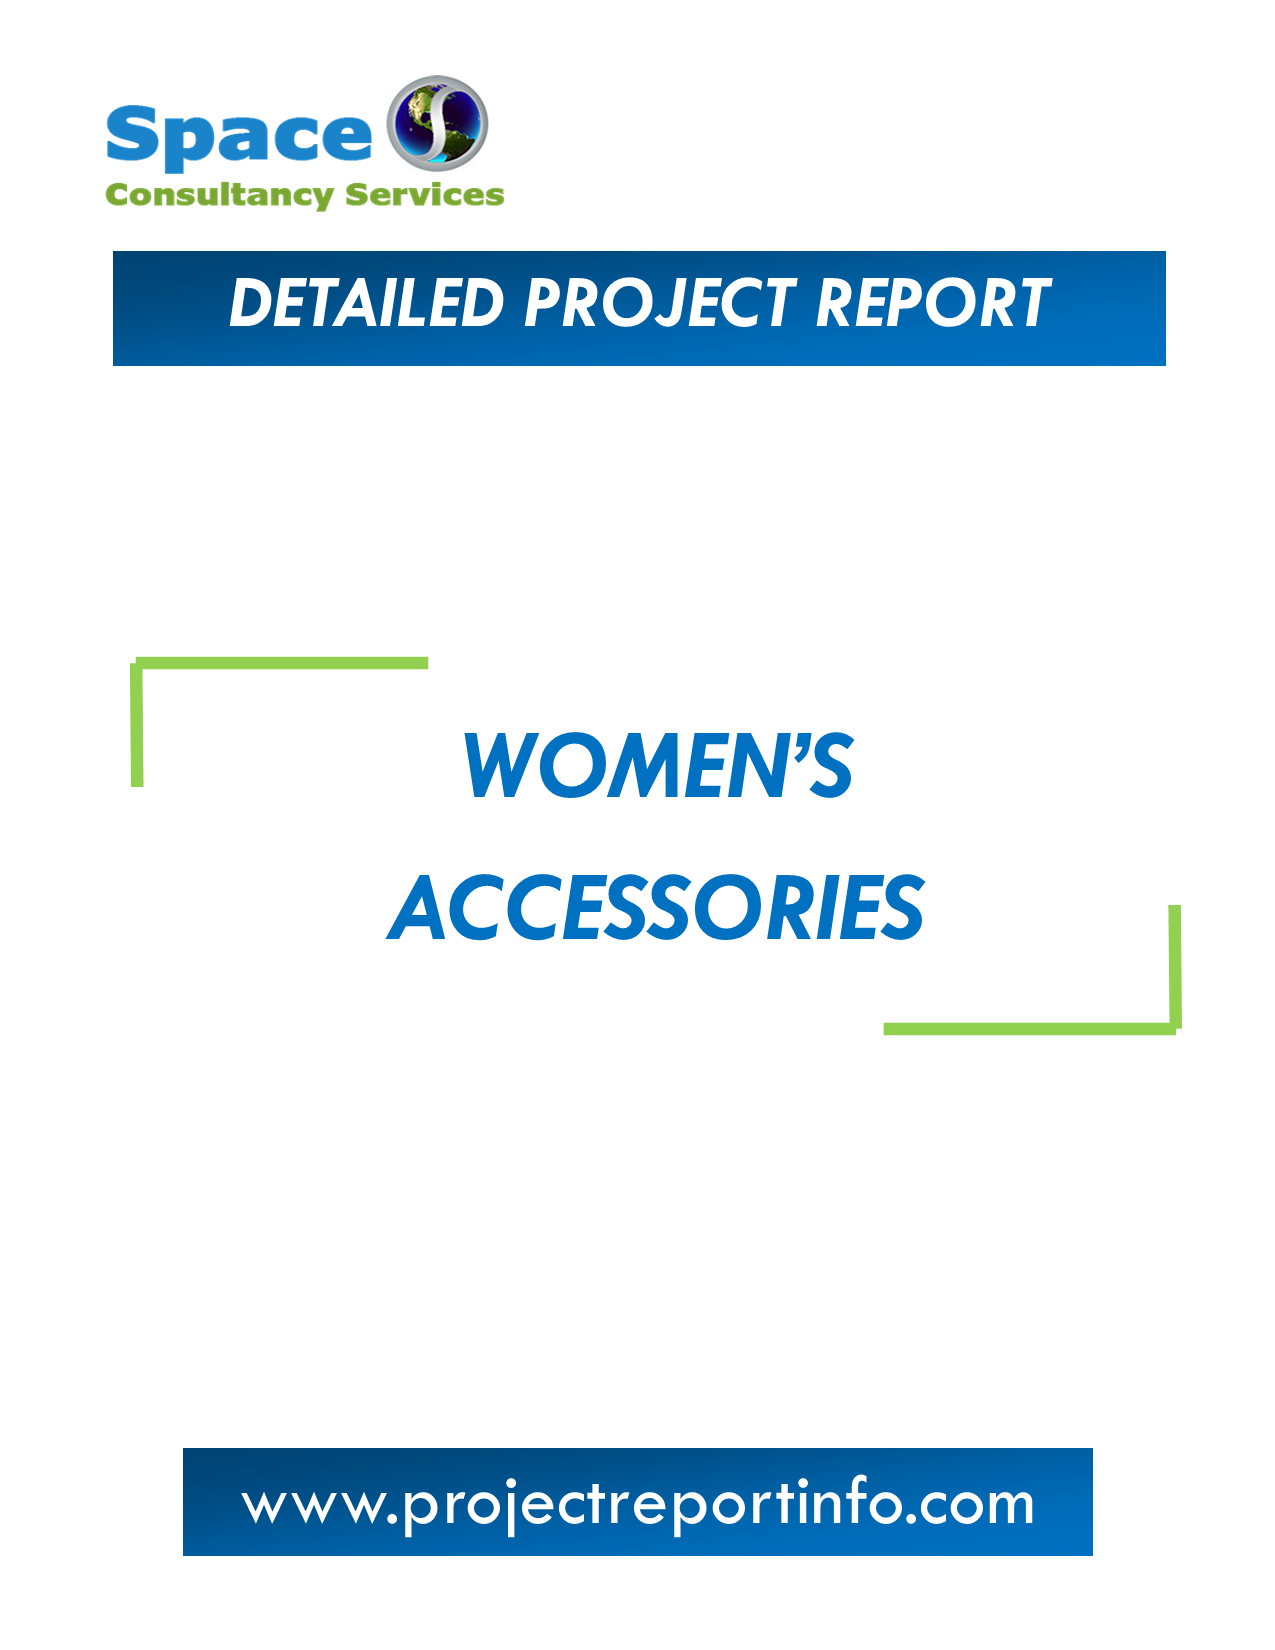 Project Report on Women's Accessories Manufacturing